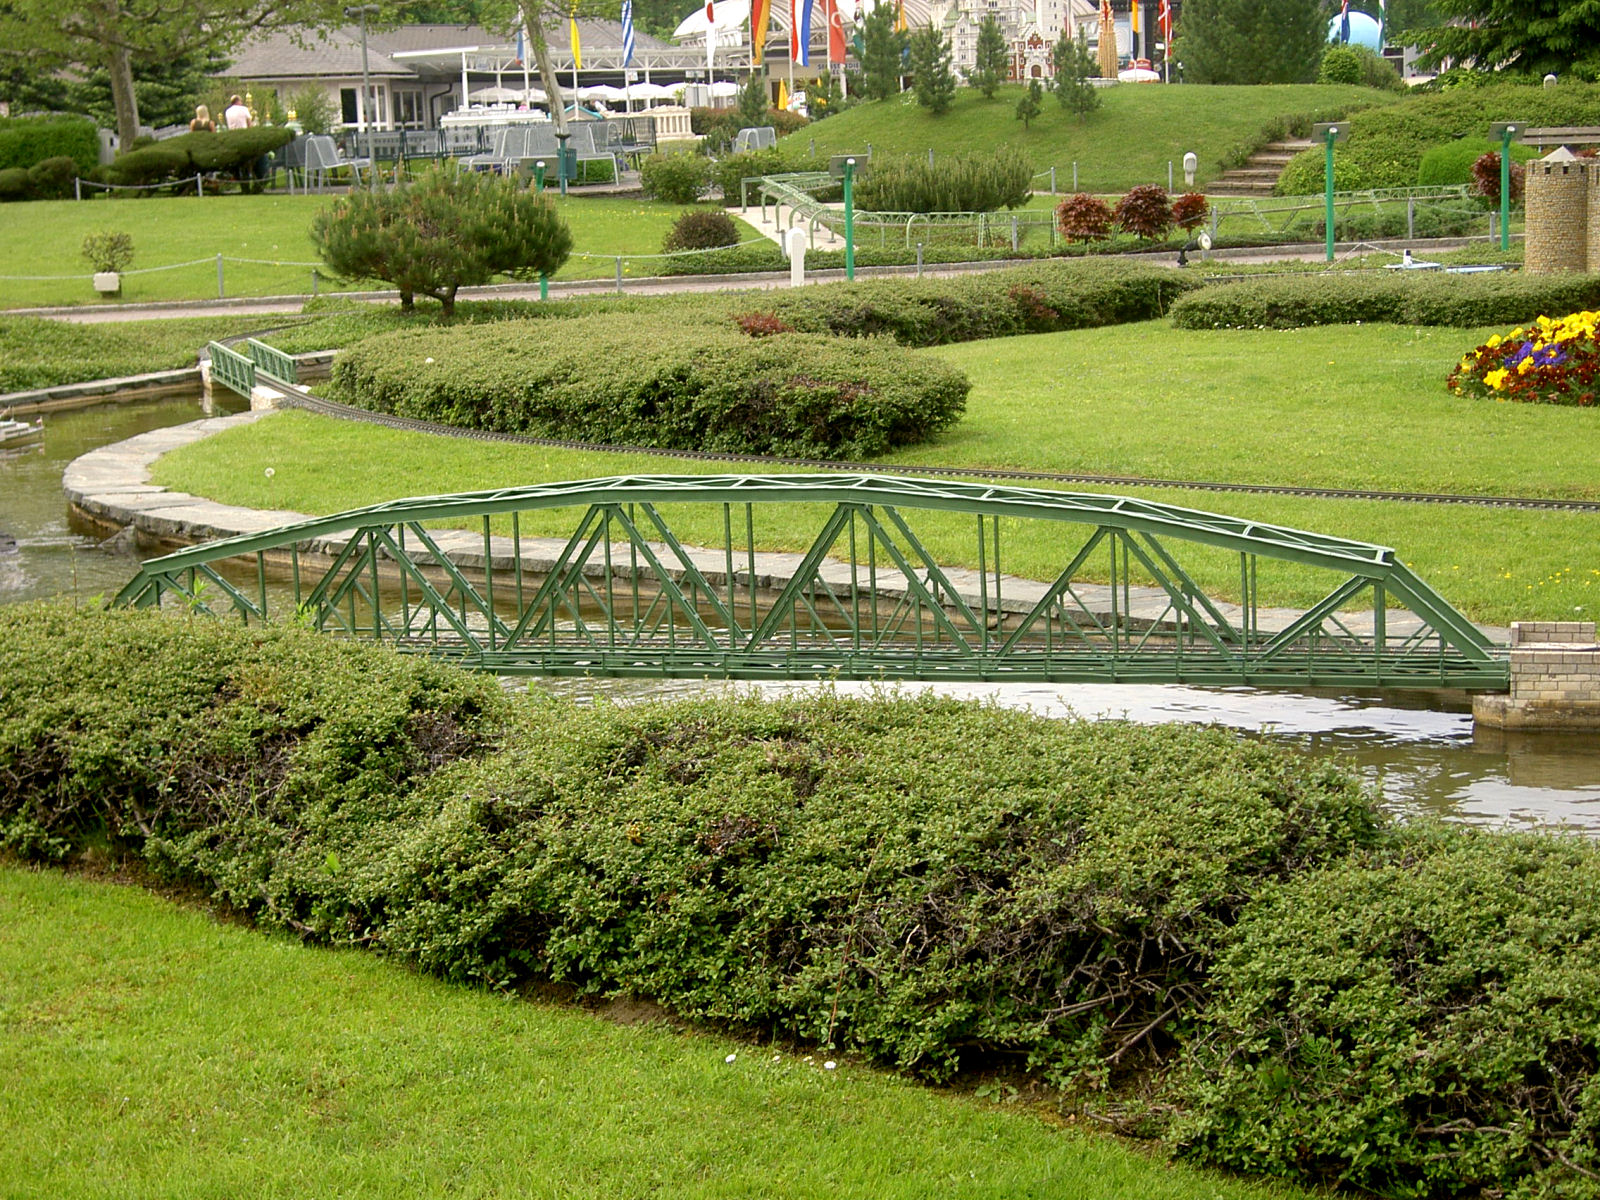 Model of the Steel truss bridge over the Mur at Minimundus, Klagenfurt, Austria